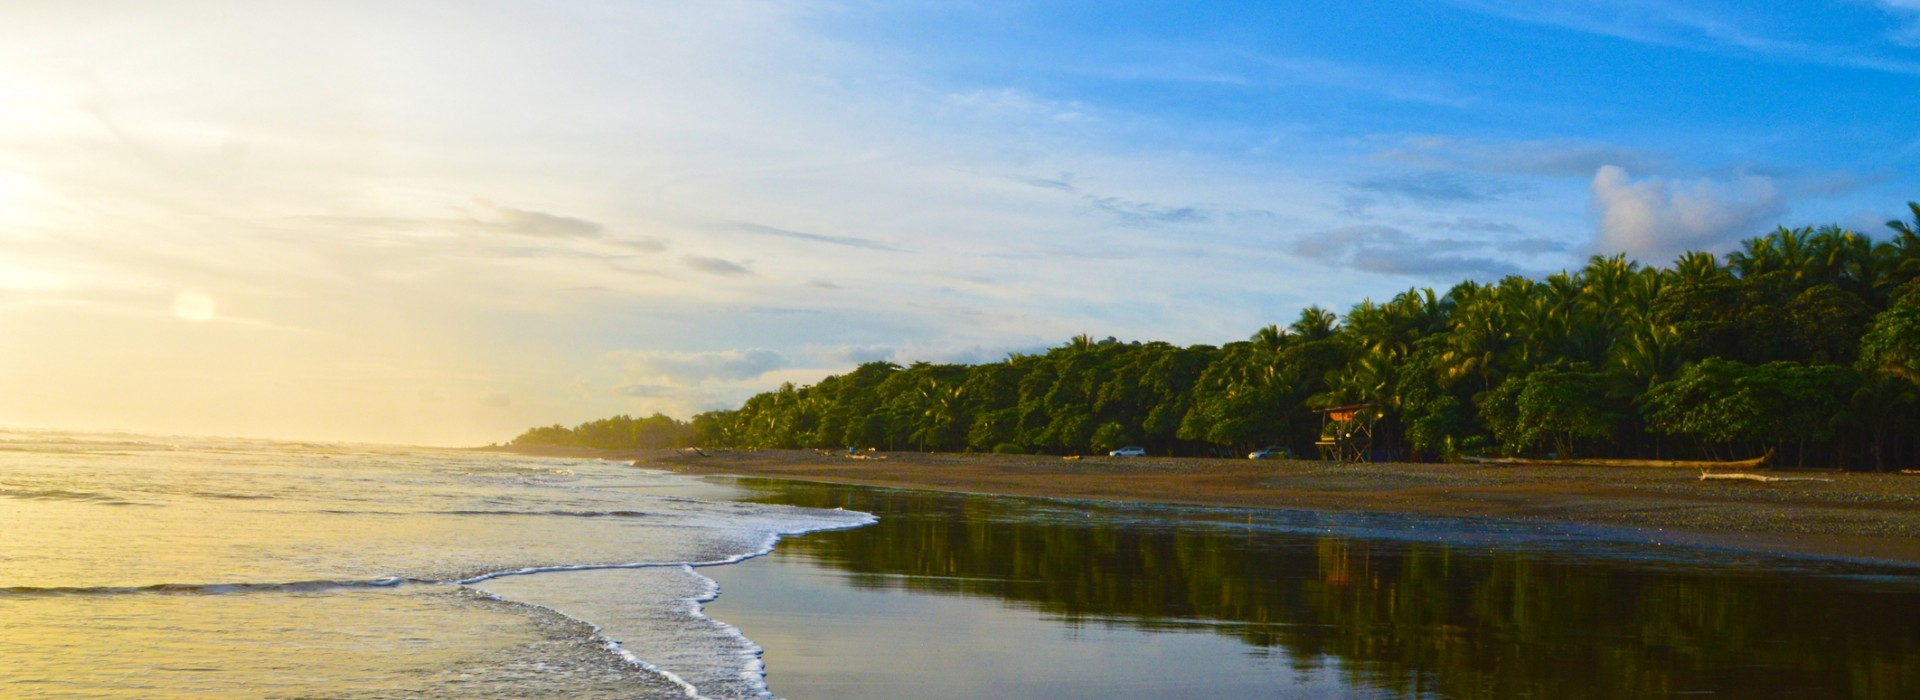 Guanacaste Province of Costa Rica is home to many beaches on the Pacific coastal shores.